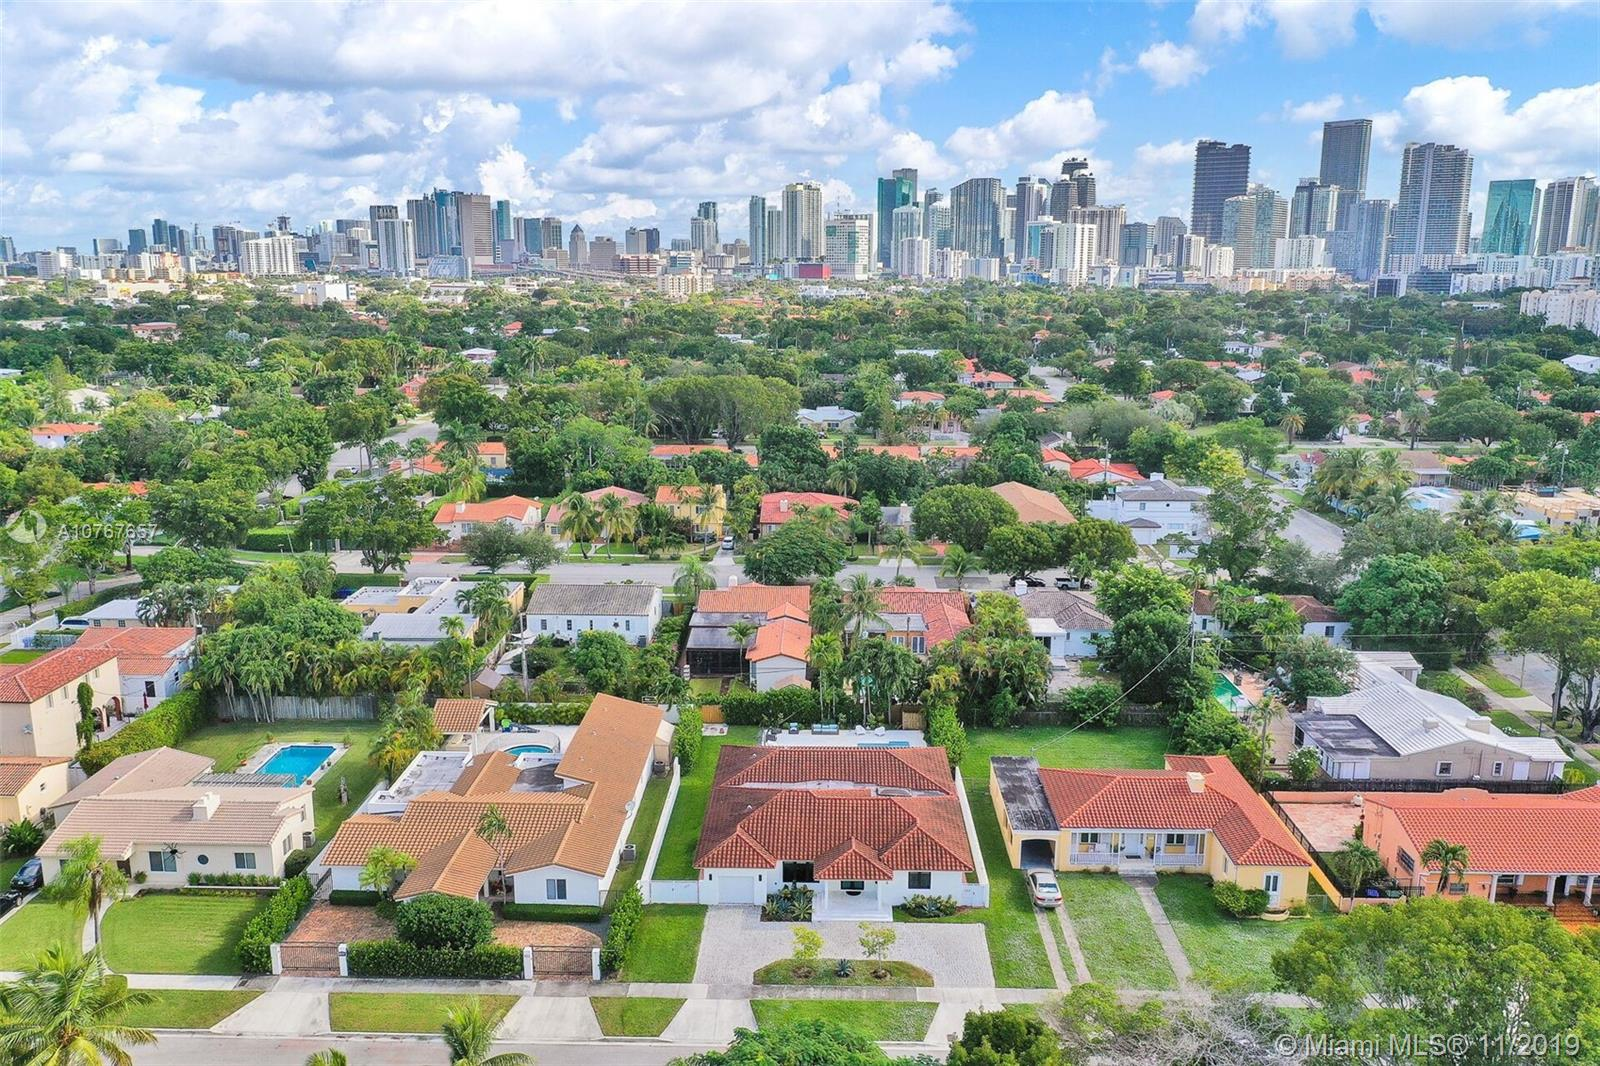 Back on the market this beautifully remodeled Roads Residence minutes from Brickell & Downtown Miami. large 4 bedrooms 3.5 bath pool home with over 3500 sqft on a 10,575 lot was completely remodeled in 2017 with no expenses spared. Open concept living at its finest with beautifully refinished Dade Pine flooring throughout, custom Italian gourmet open kitchen with large center island quartz counters and new S/S appliances overlooking a large family room. The large master wing is nestled away for privacy and includes a generous walk-in closet, sitting area, and spa-like master bath to relax in. The large open terrace overlooks a new saltwater pool and beautiful private walled-in backyard and that includes cabana bath. New A/C units, impact windows and doors, updated electrical and plumbing.